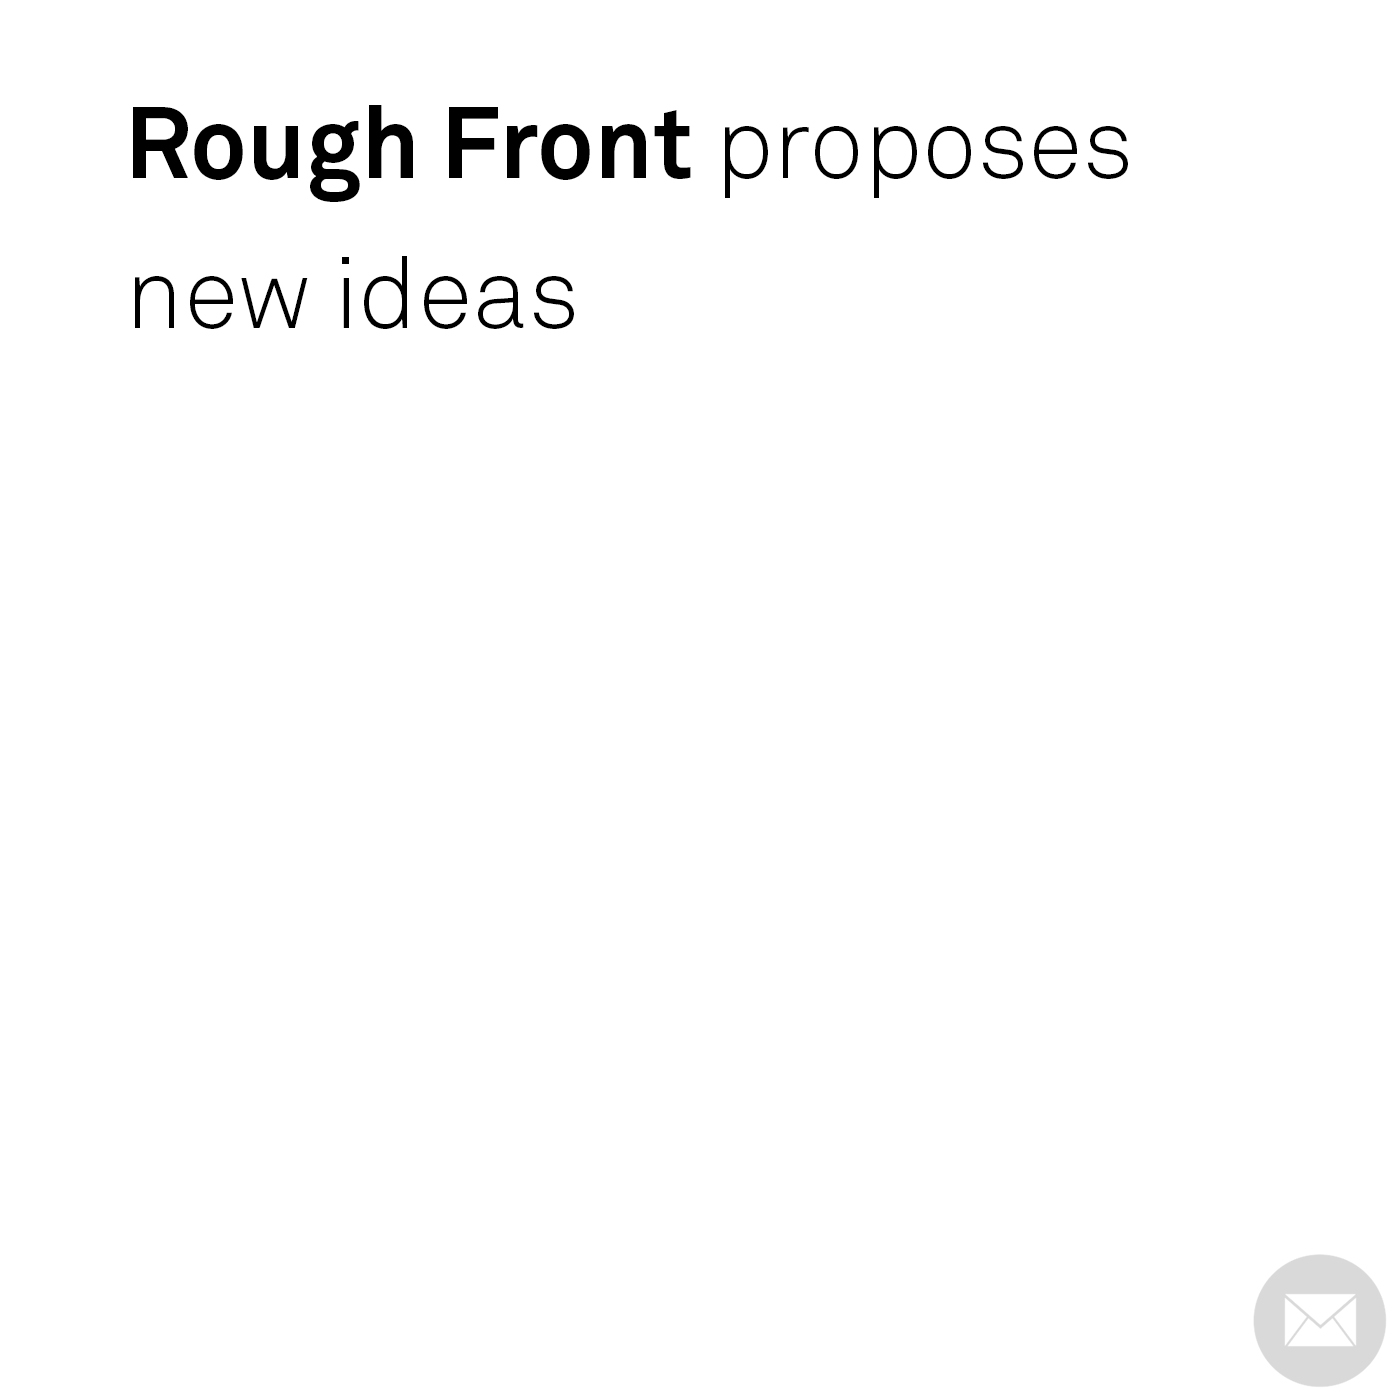 Rough Front is -envelope- 021.jpg